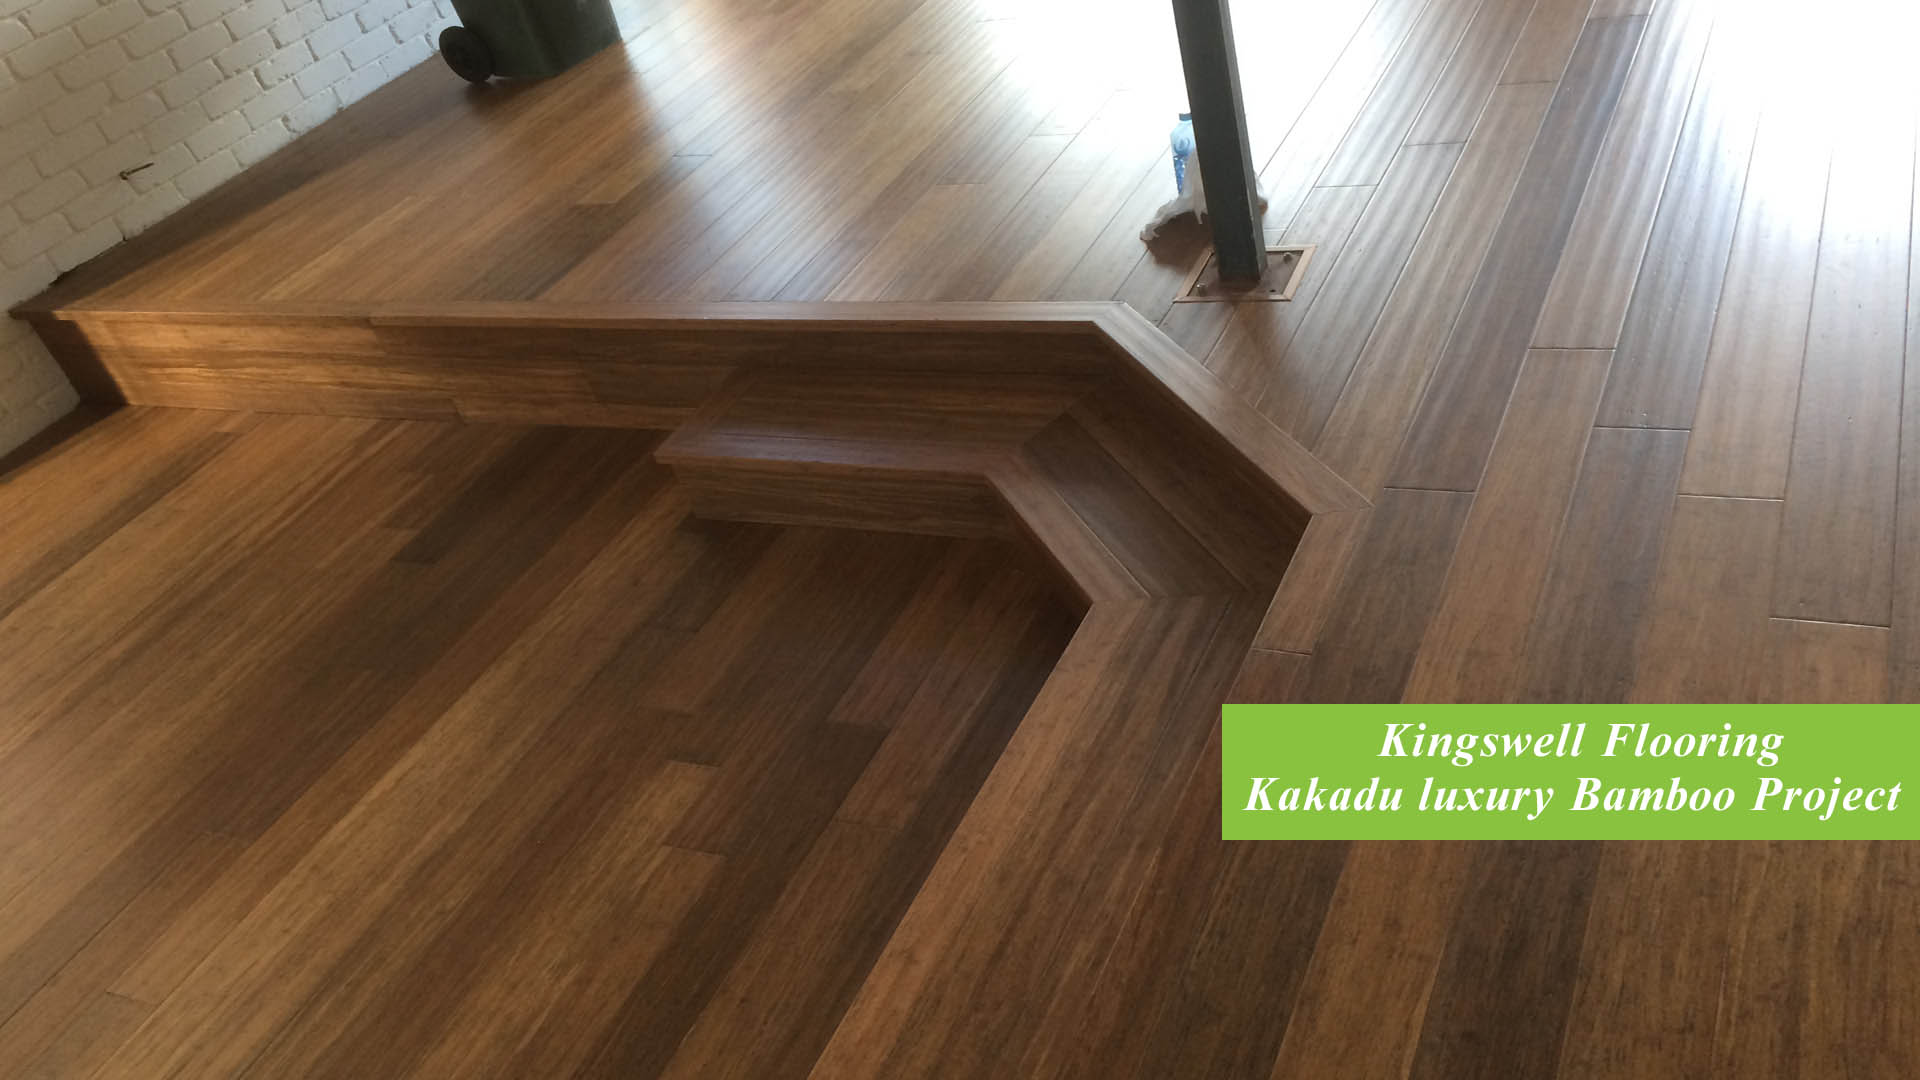 Kingswell Flooring - Bamboo Kakadu Colour Melbourne